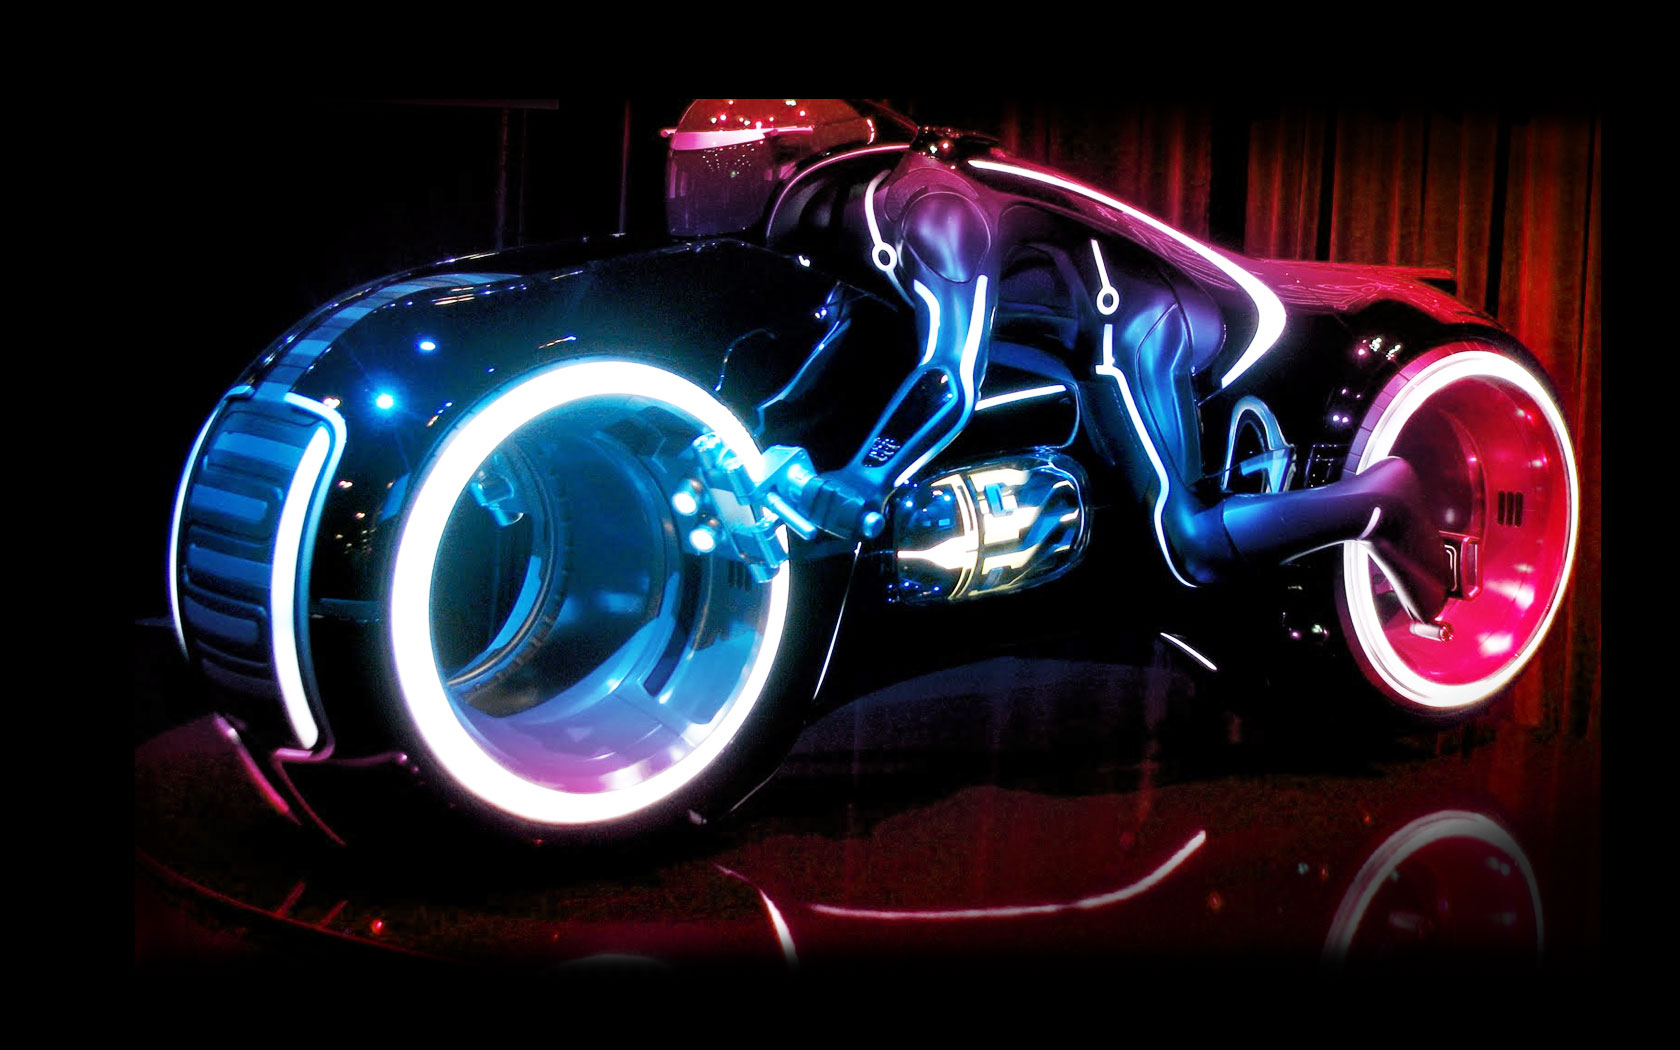 future motorbike designalex kuntz, 3d digital art, science fiction